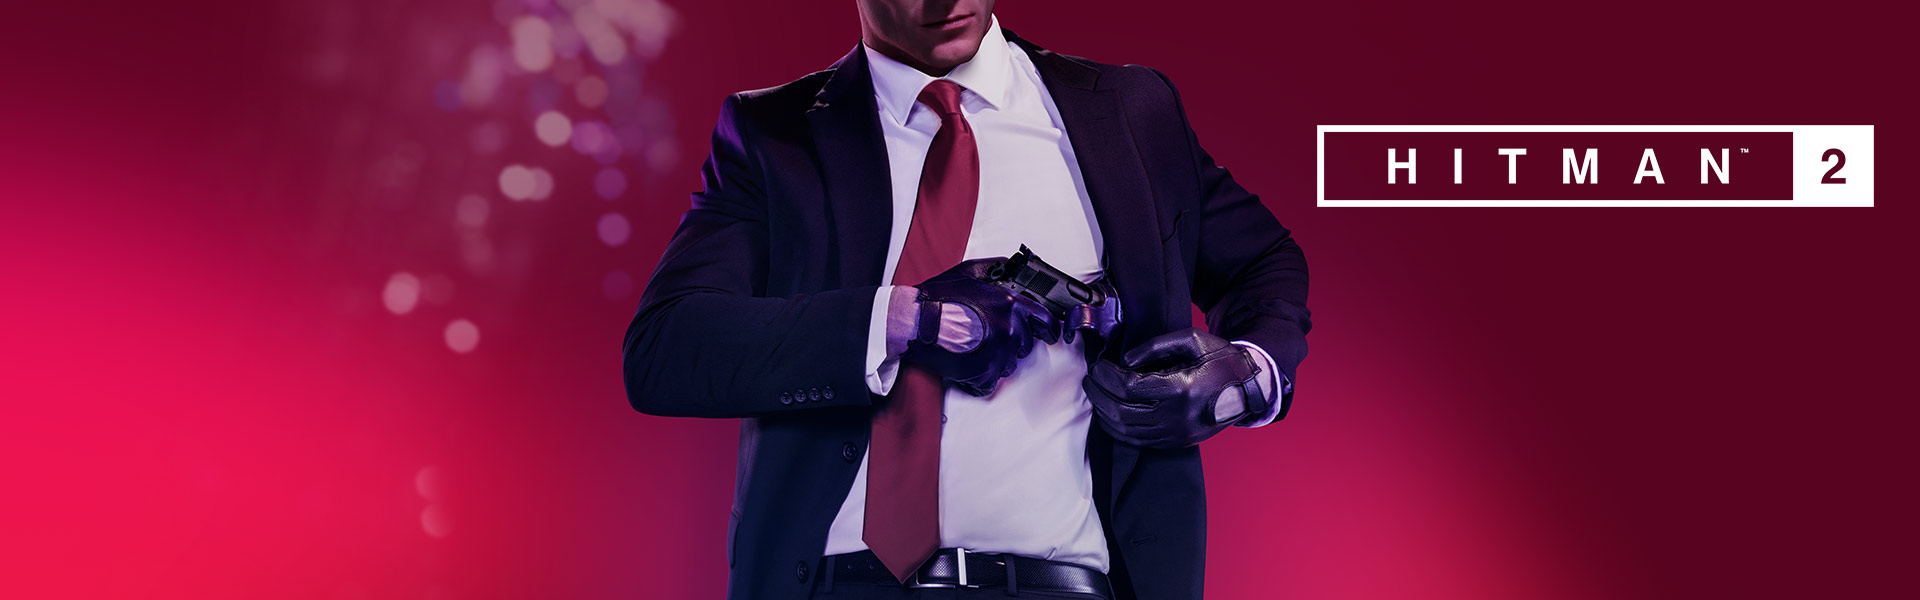 Hitman 2, o Agent 47 retira a pistola do coldre escondido no casaco